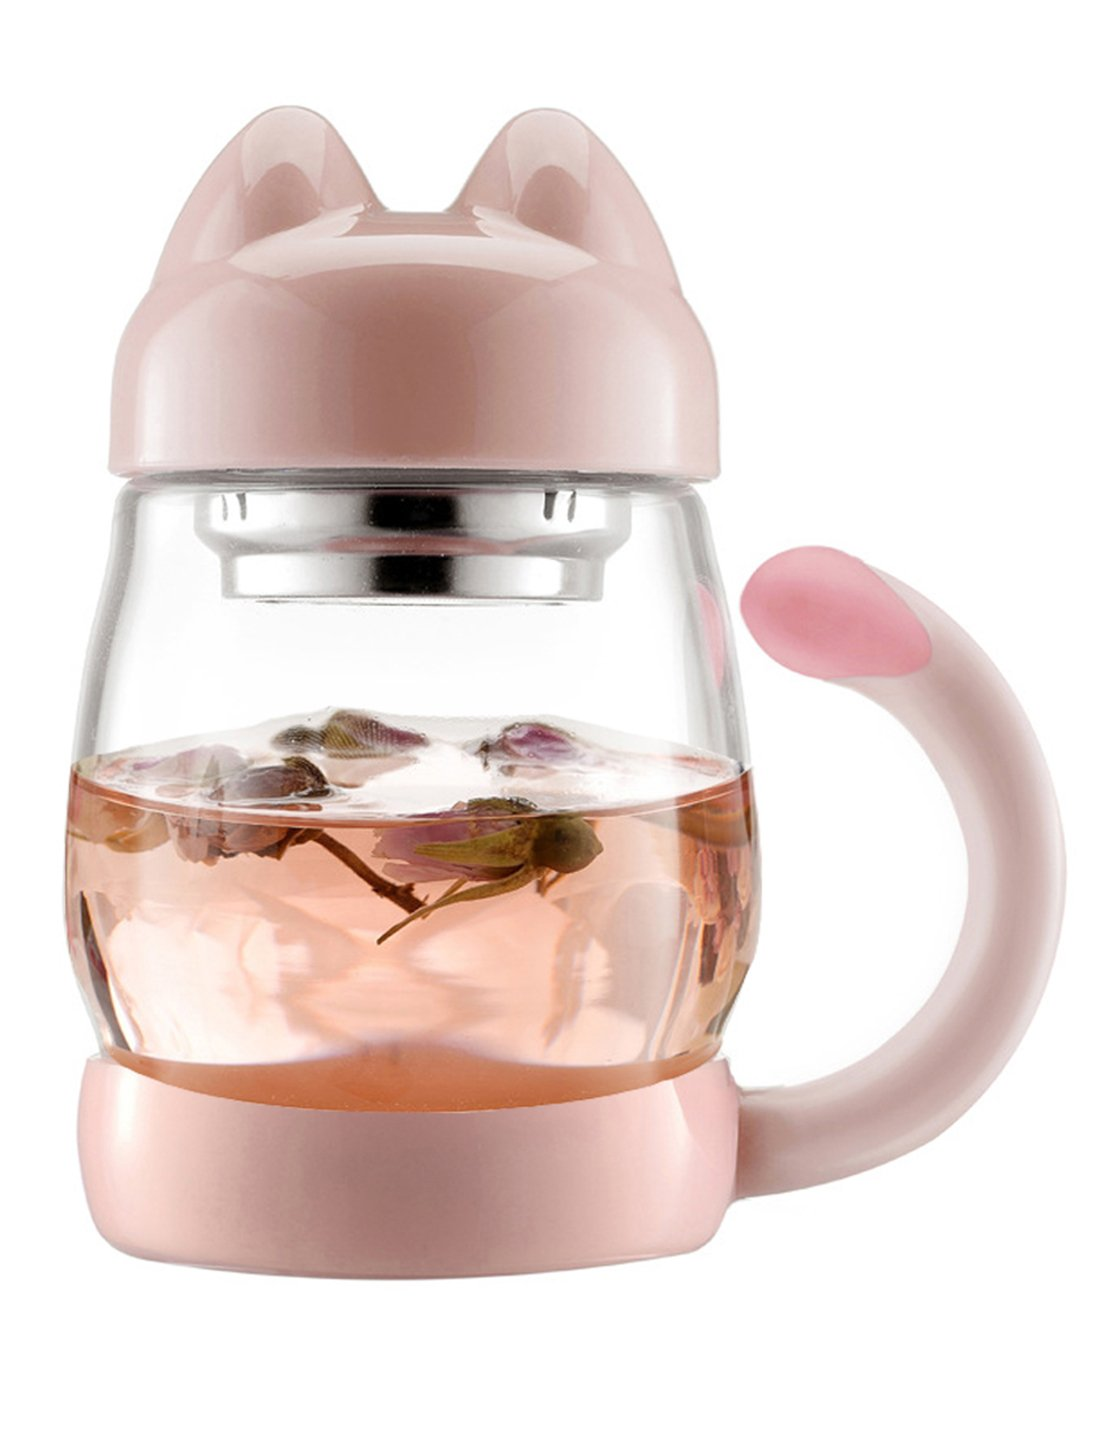 BZY 420 ml / 14 oz Portable Cute Cat Tail Glass Tea Cup with a lid, Heat Resistant Mugs with a Strainer (Black) BZYO520-P